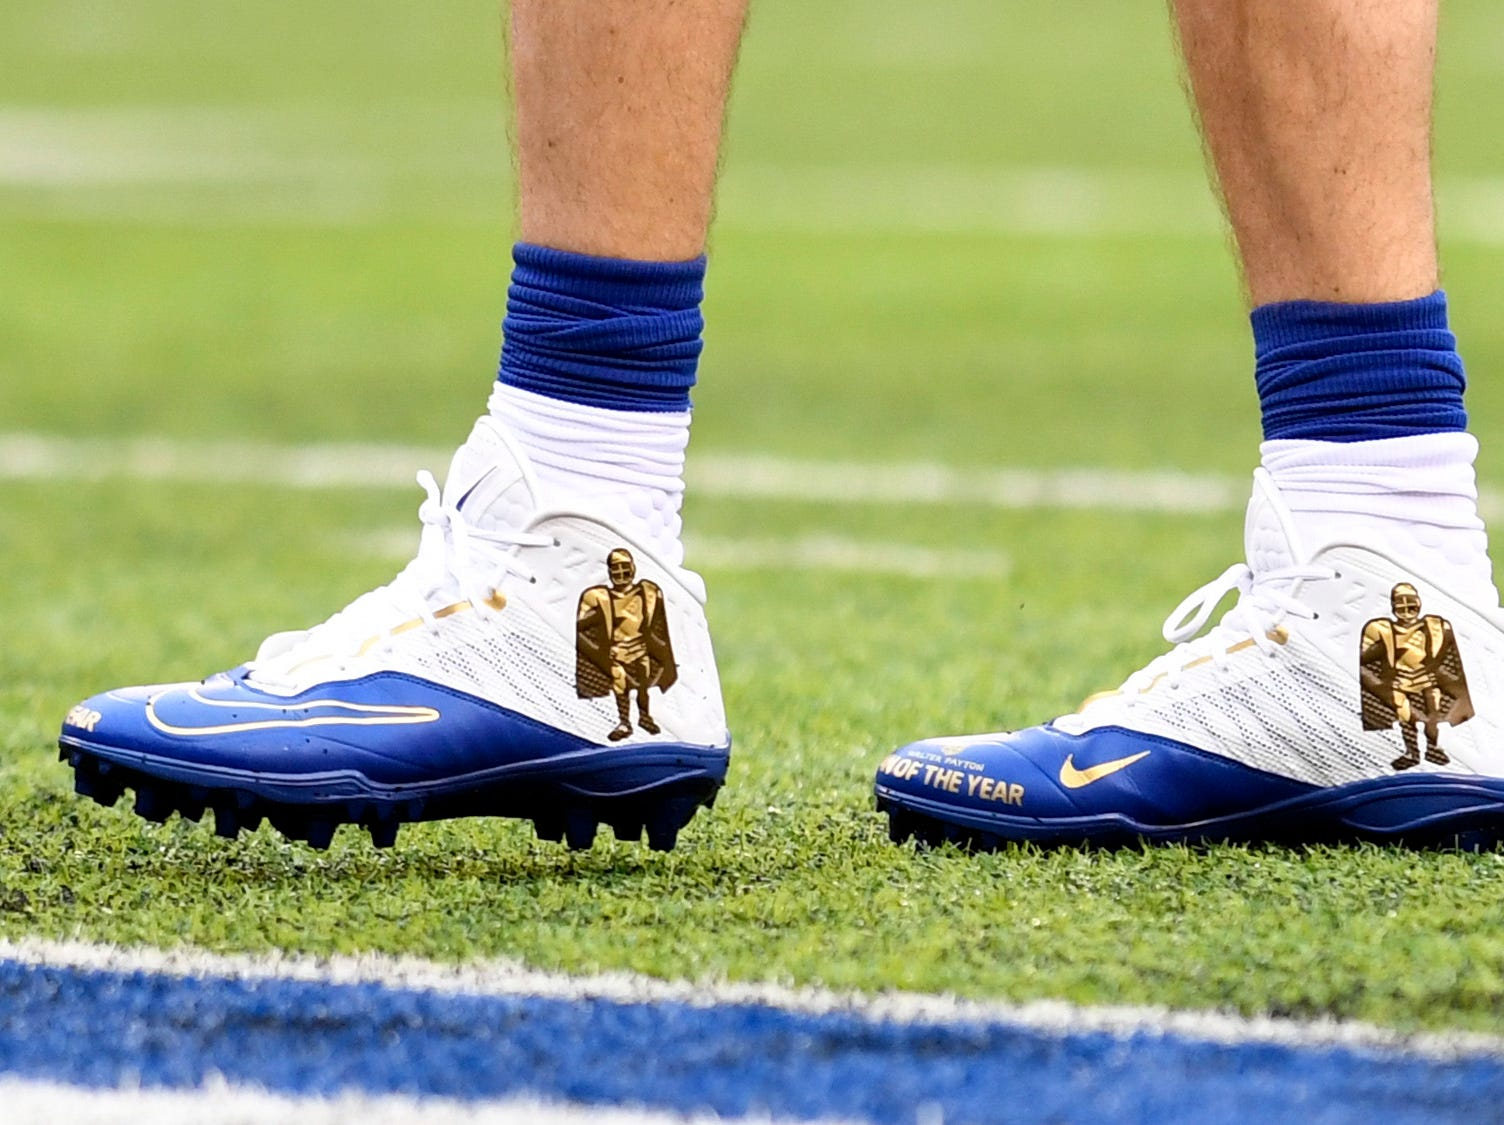 New York Giants quarterback Eli Manning wears Walter Payton Man of the Year cleats during warmups. The Giants face the Chicago Bears on Sunday, Dec. 2, 2018, in East Rutherford.